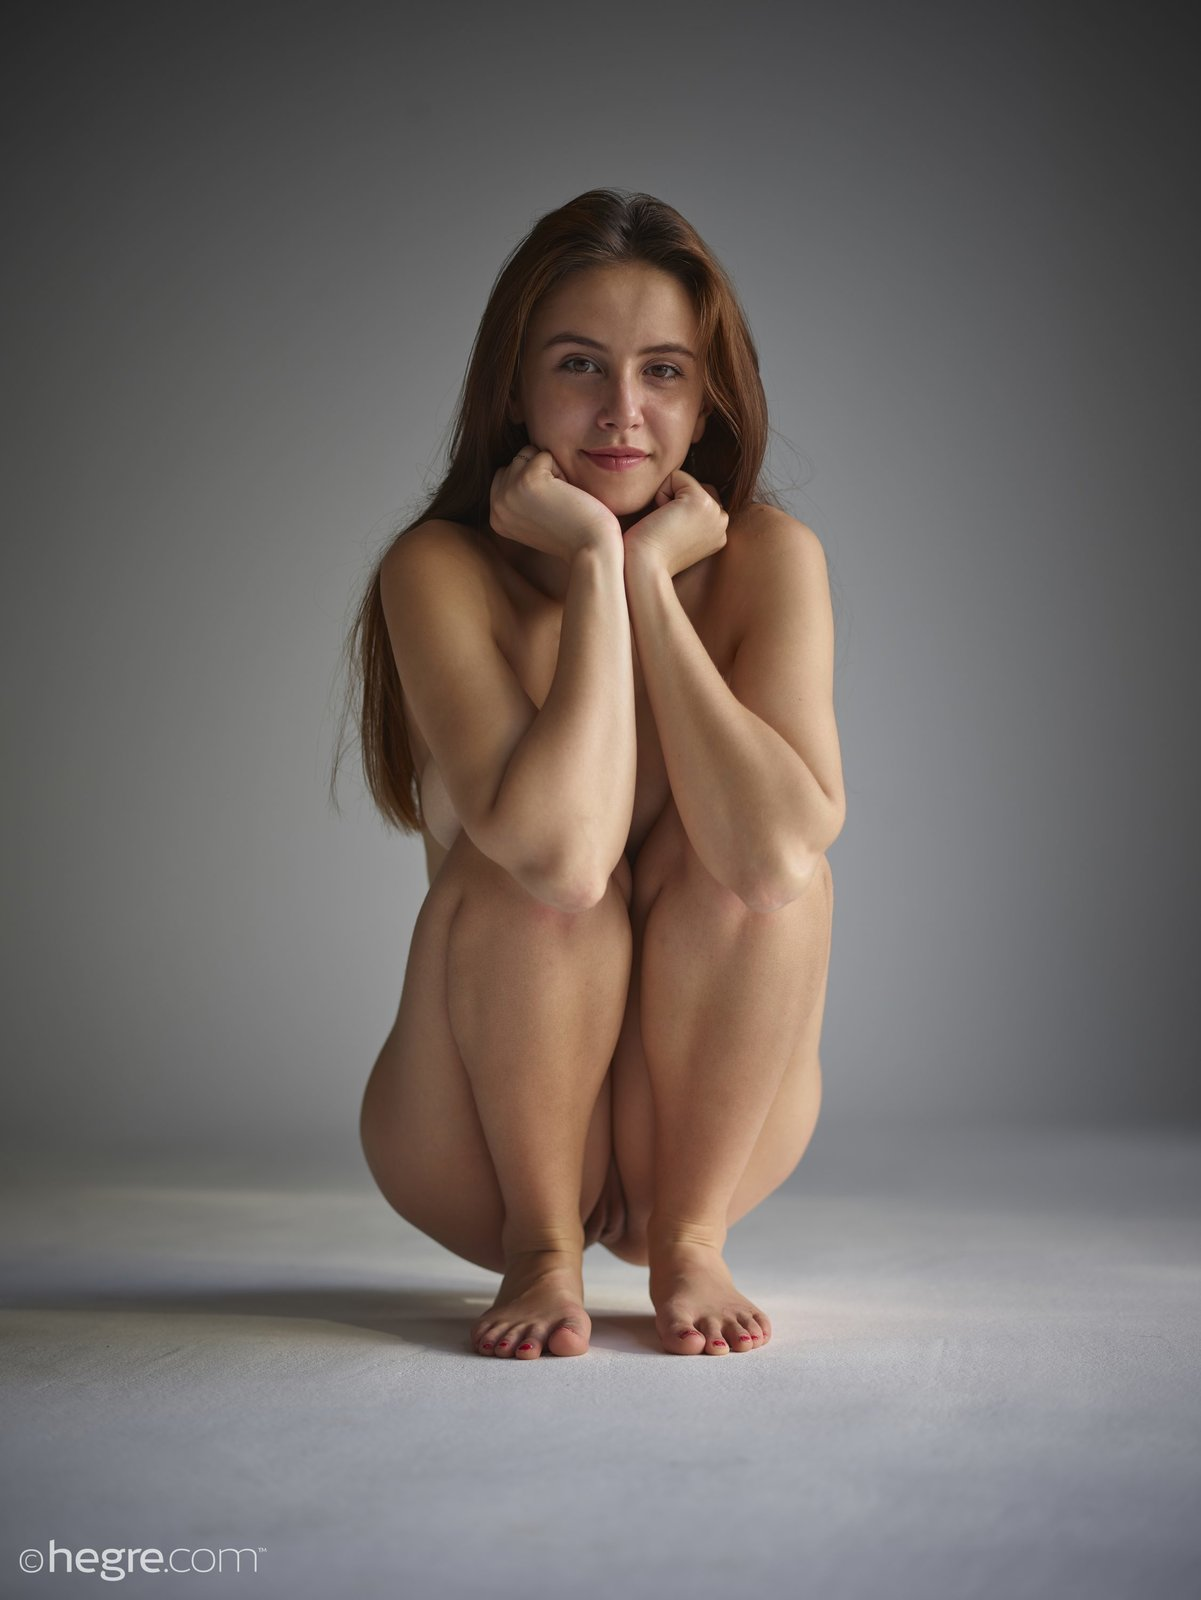 Female nude art no porno